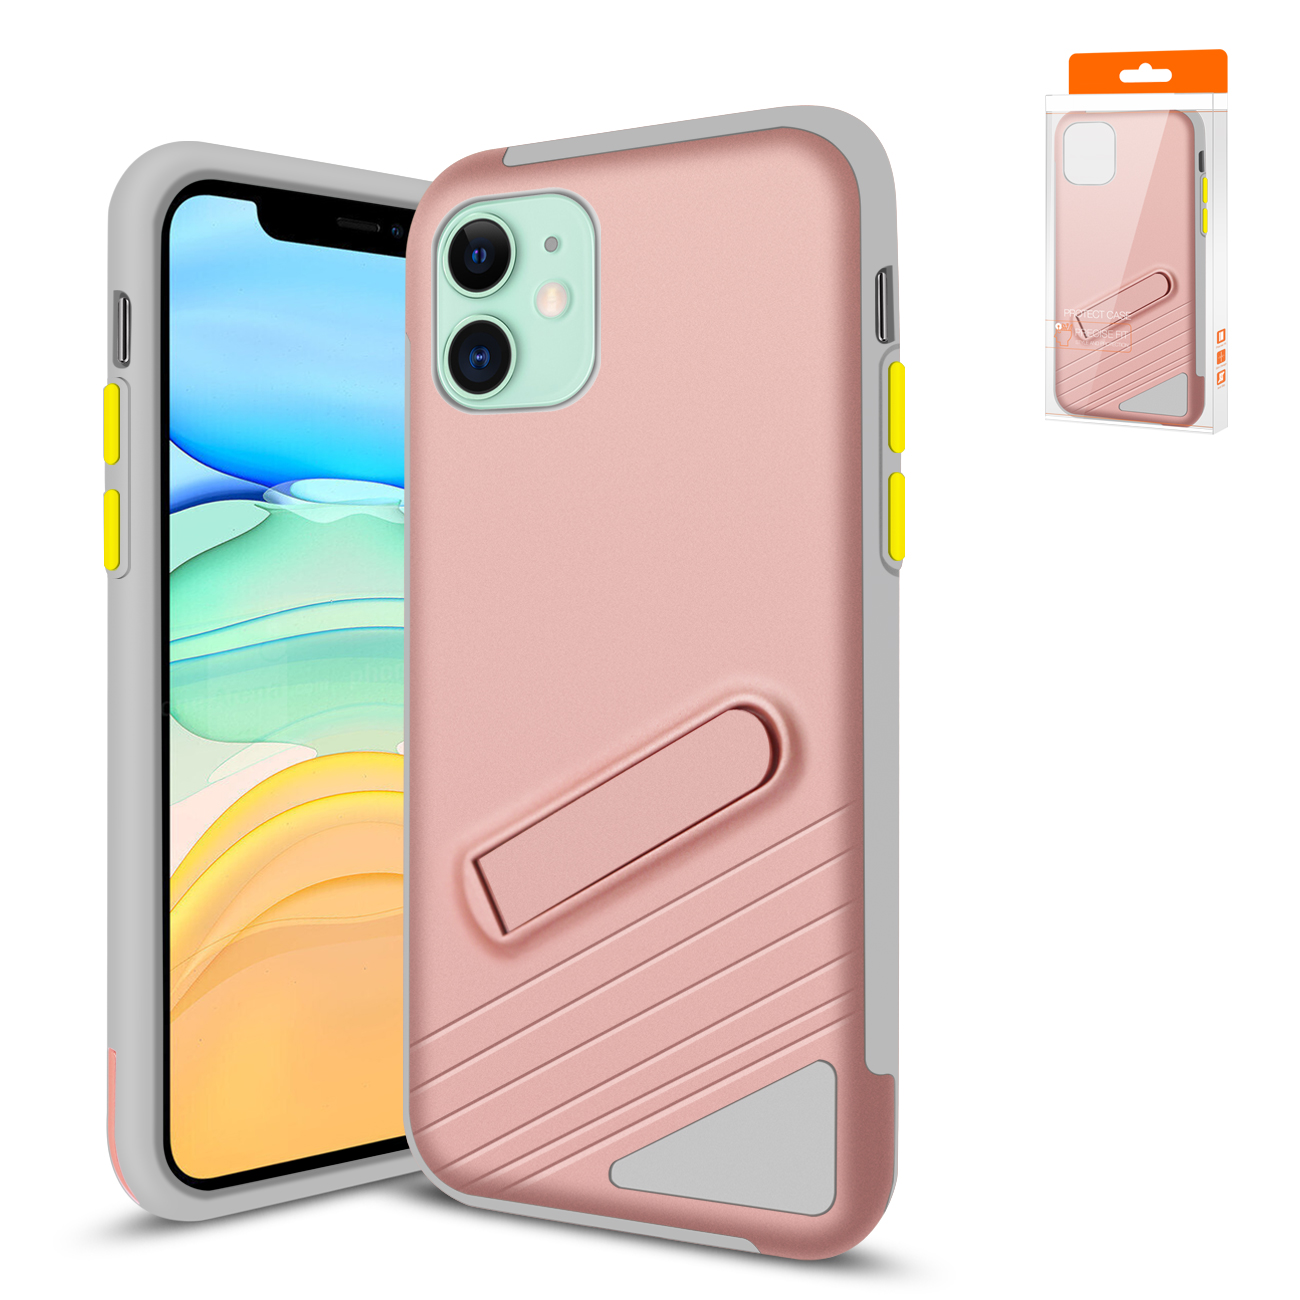 Reiko Apple iPhone 11 Armor Cases In Rose Gold